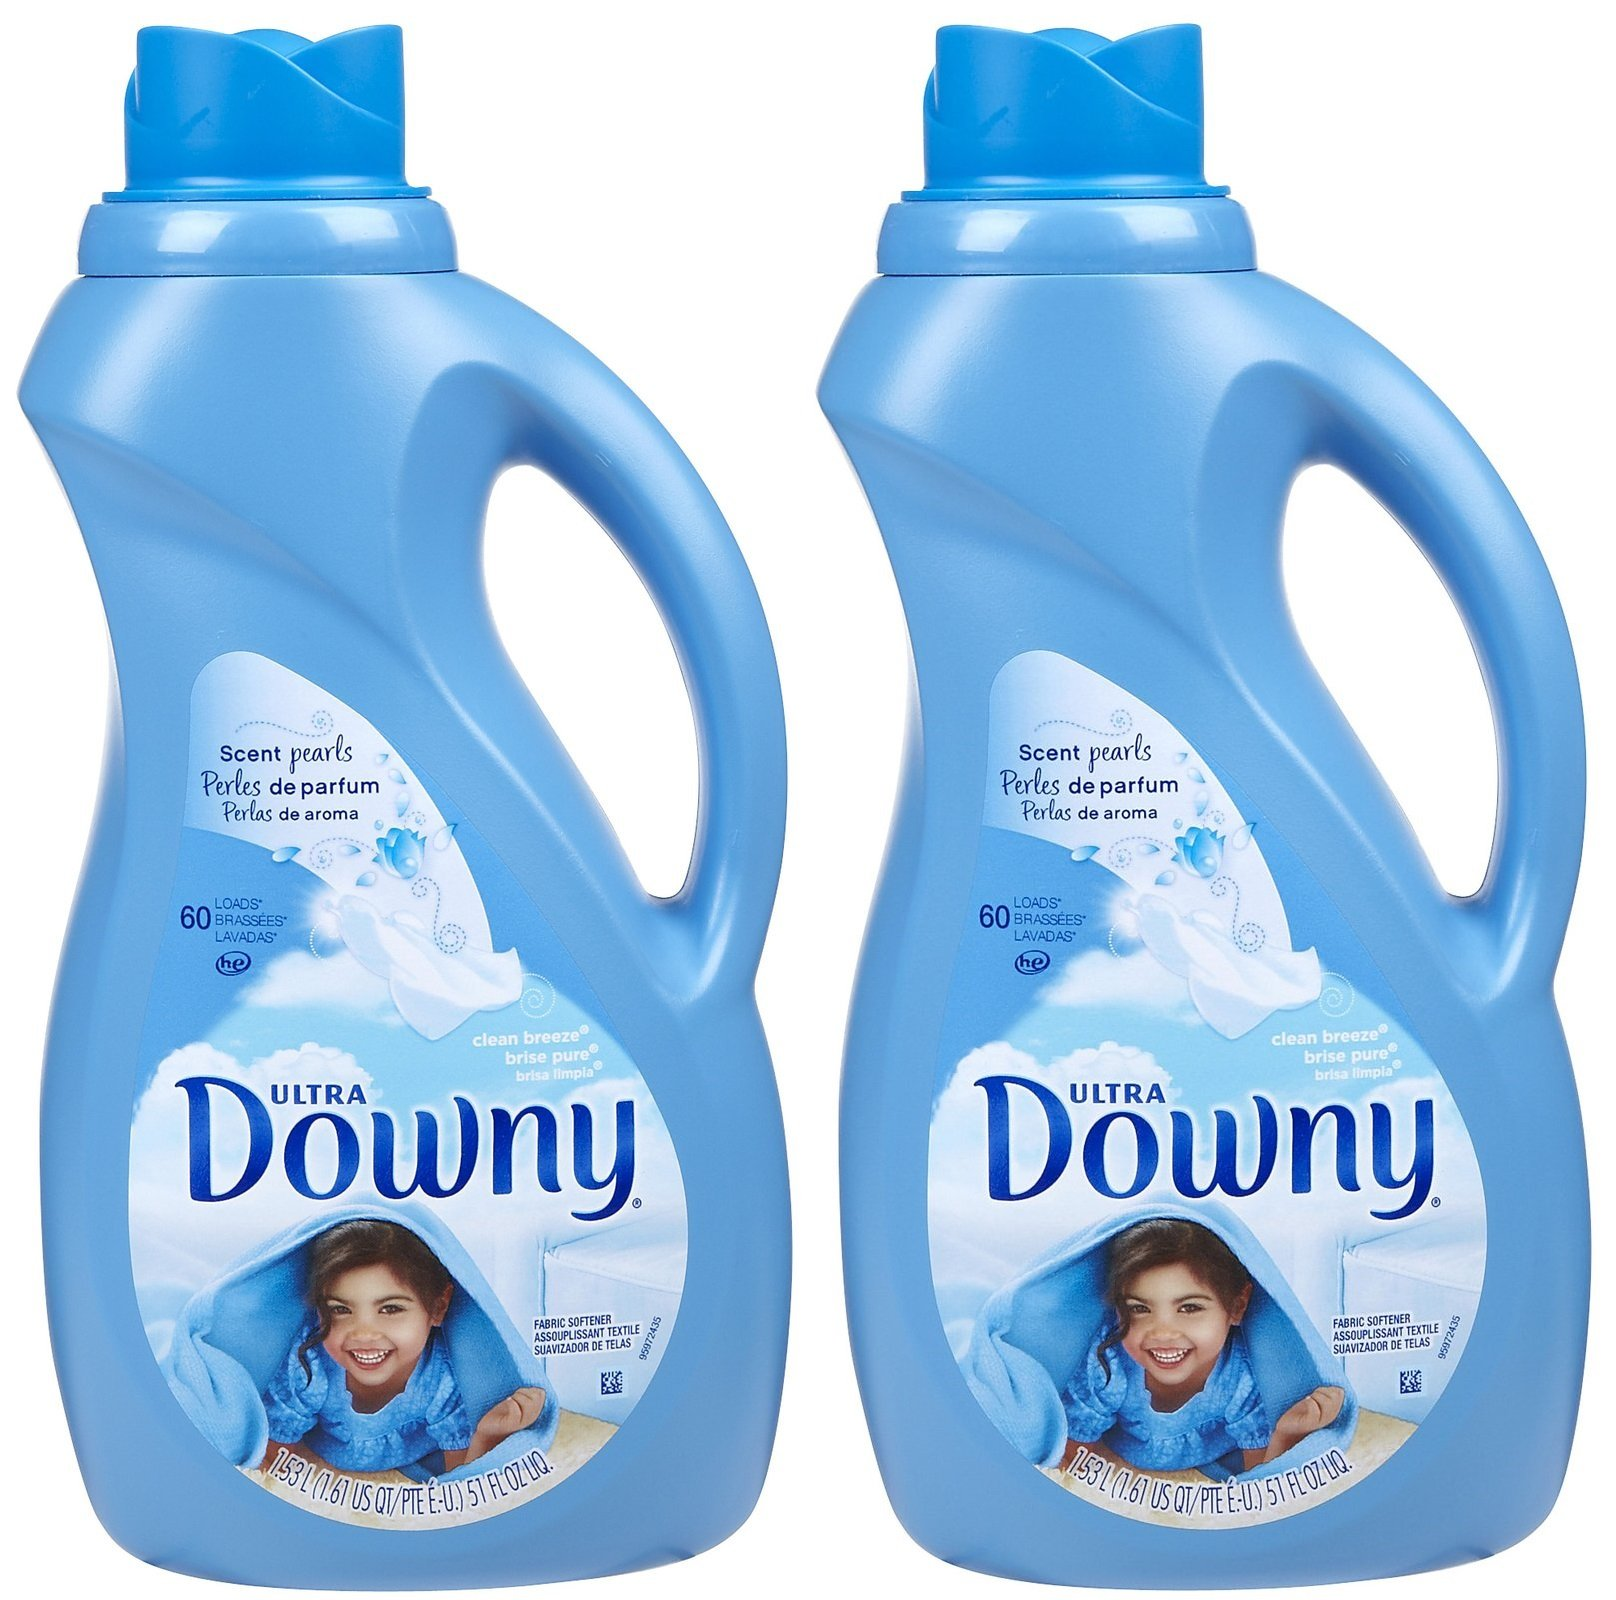 Ultra Downy 39300 27 Oz Downy Ultra Fabric Softener Liquid Clean Breeze Scent by Downy (Image #1)